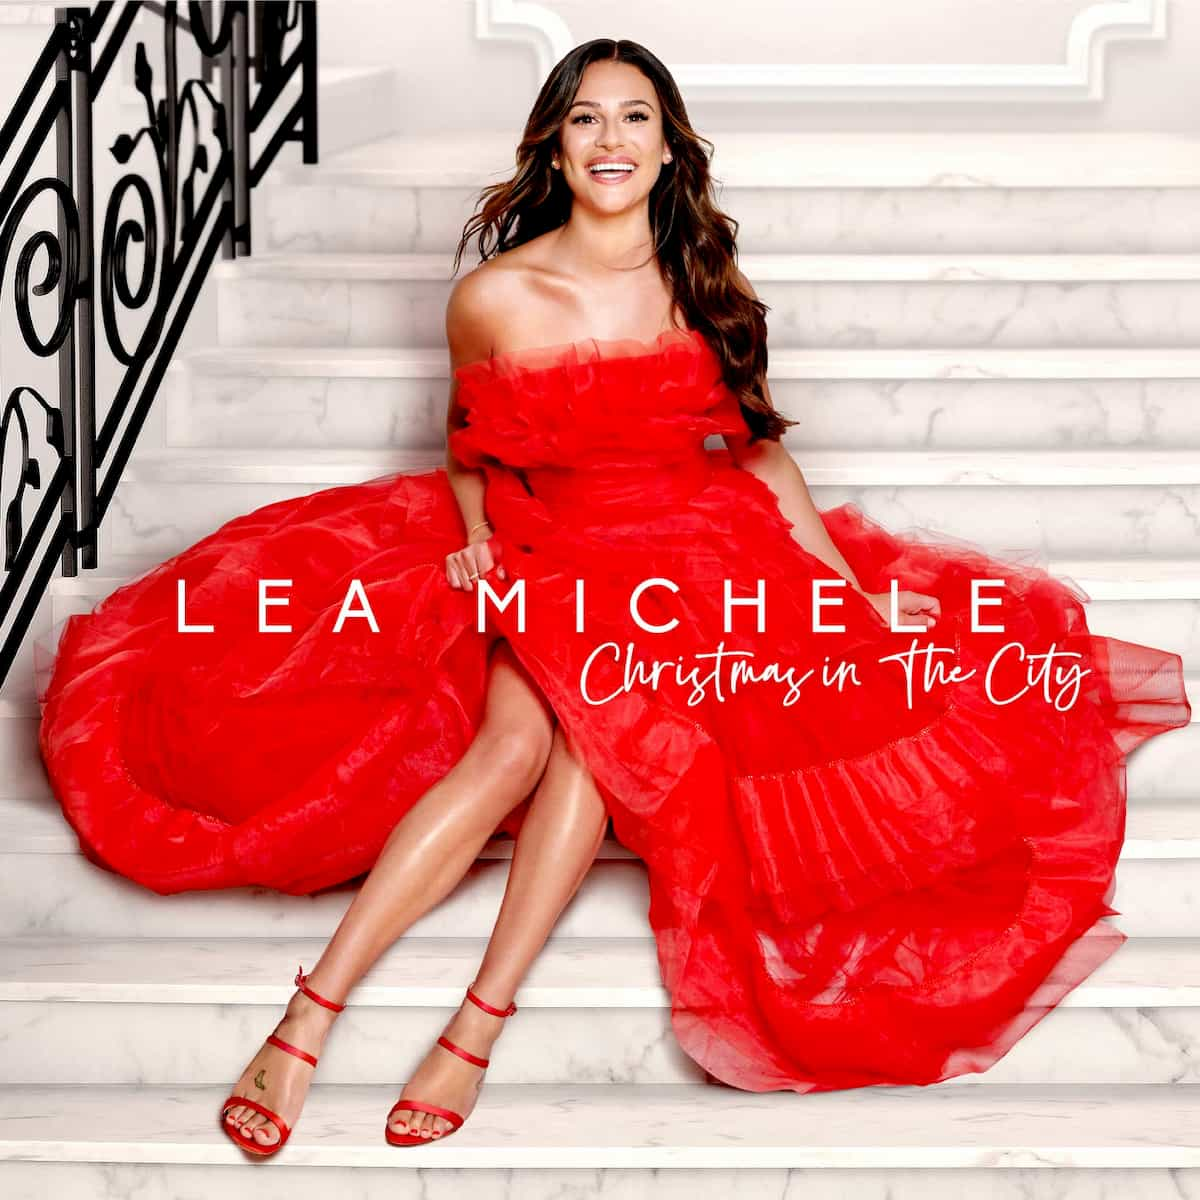 Lea Michele Christmas in The City - Weihnachts-CD 2019